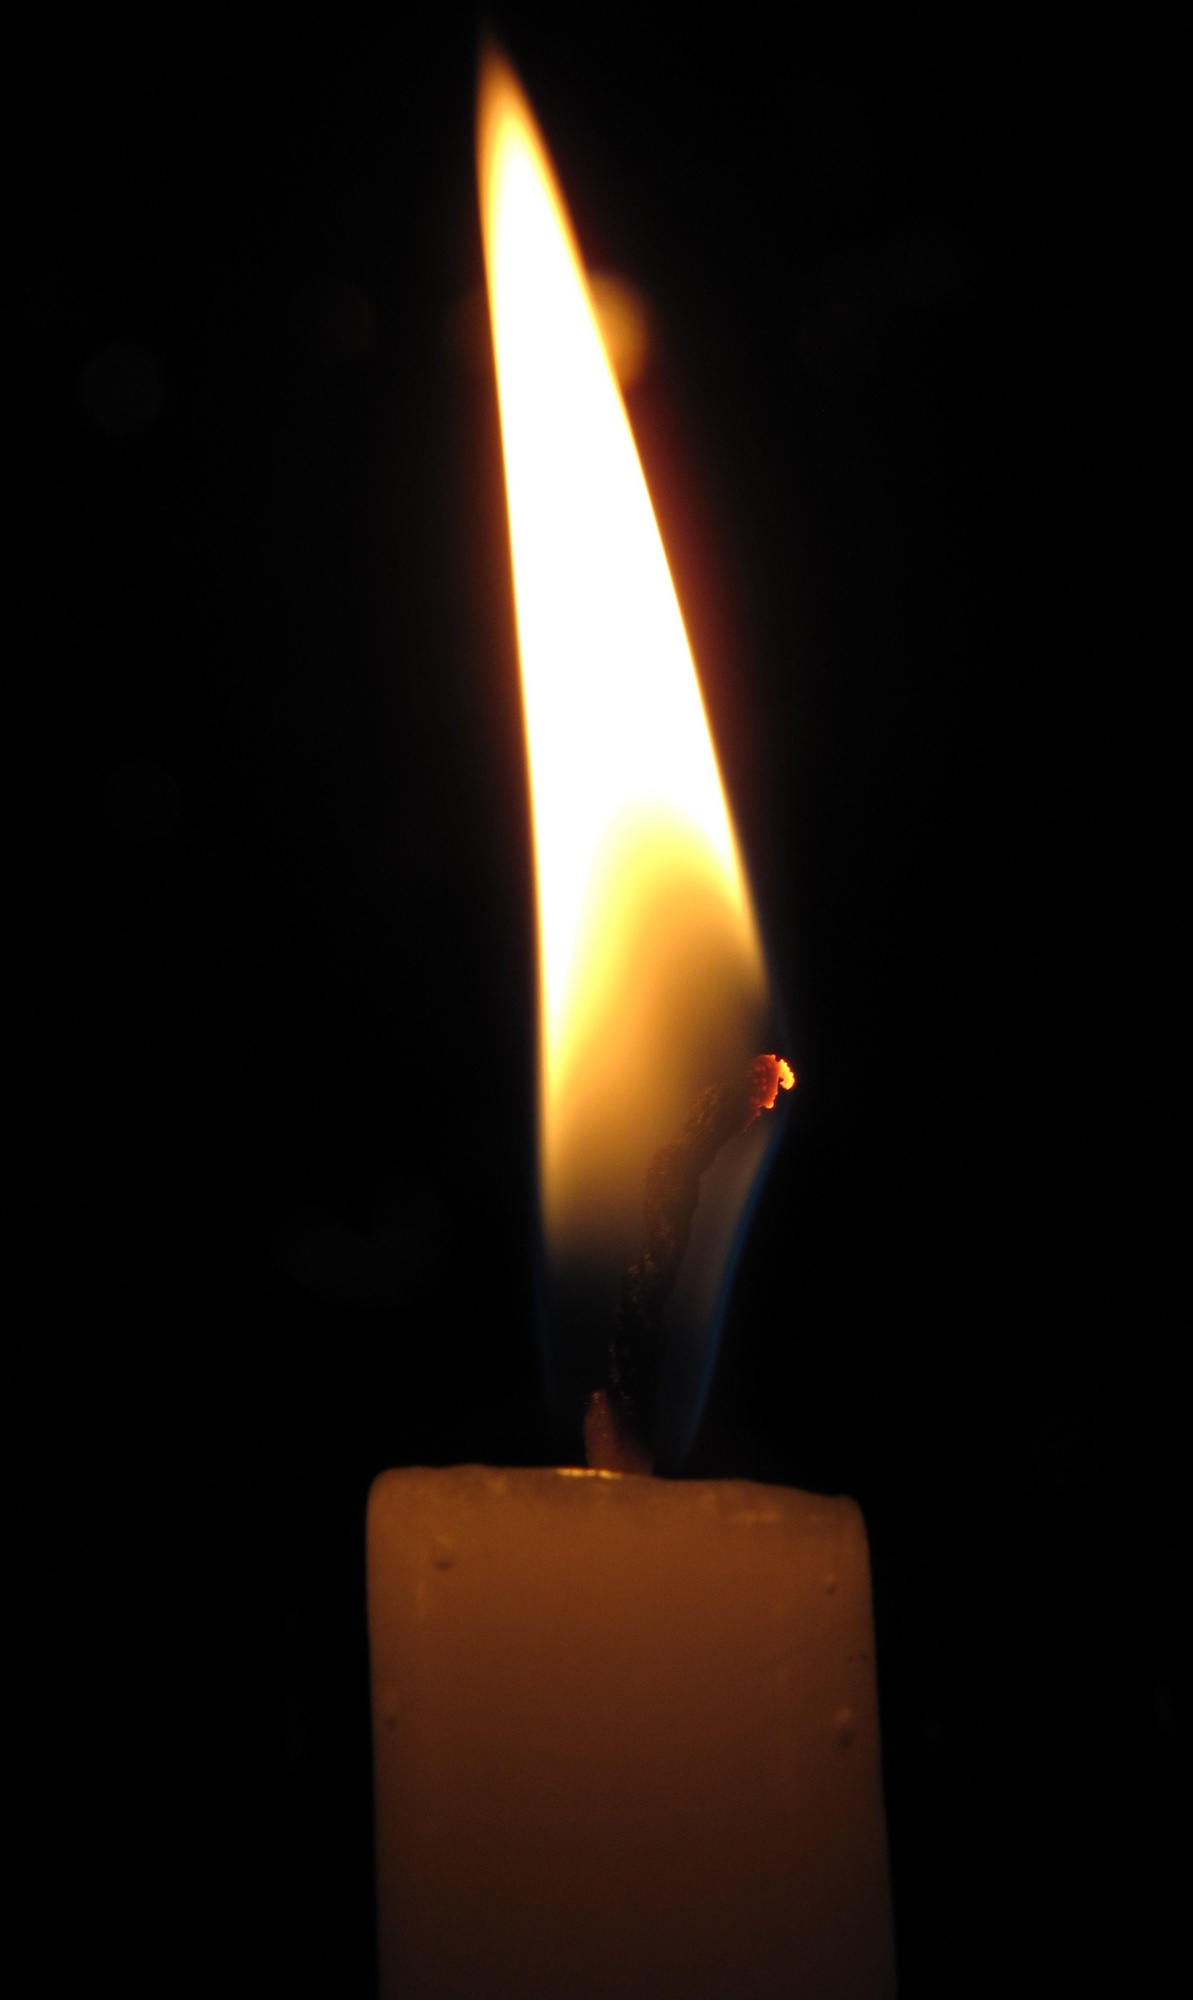 candle in the dark - photo #31